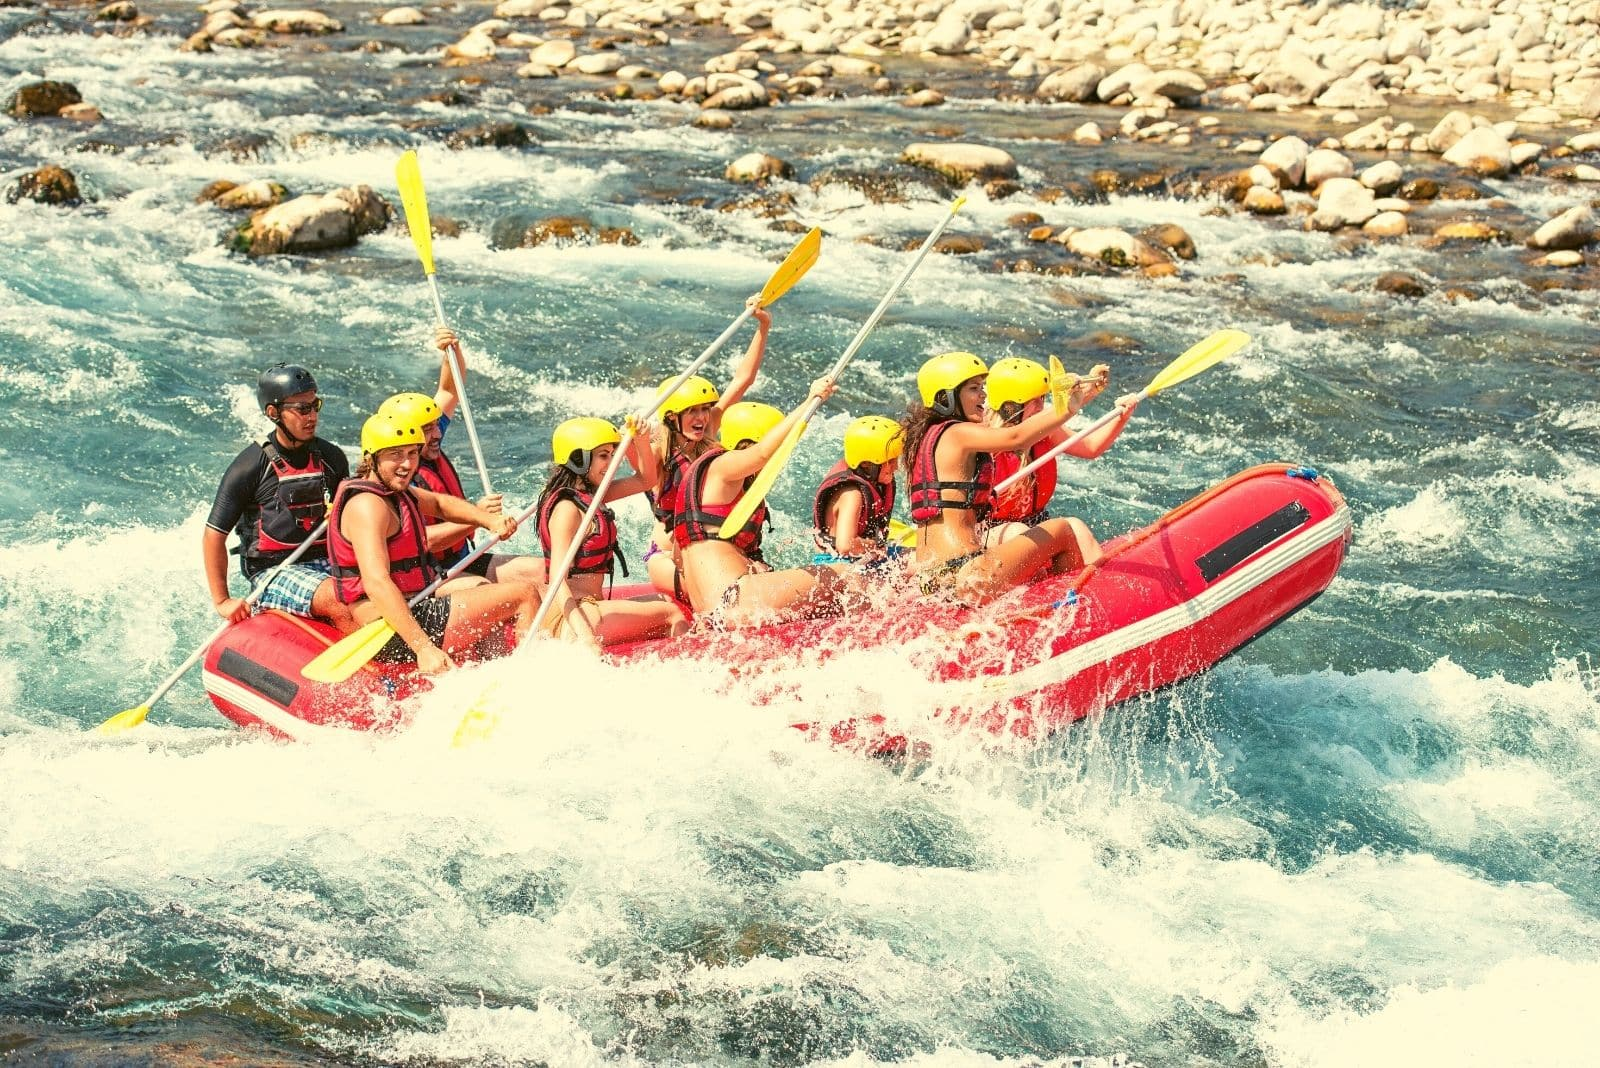 group of people enjoying the white water rafting in the river